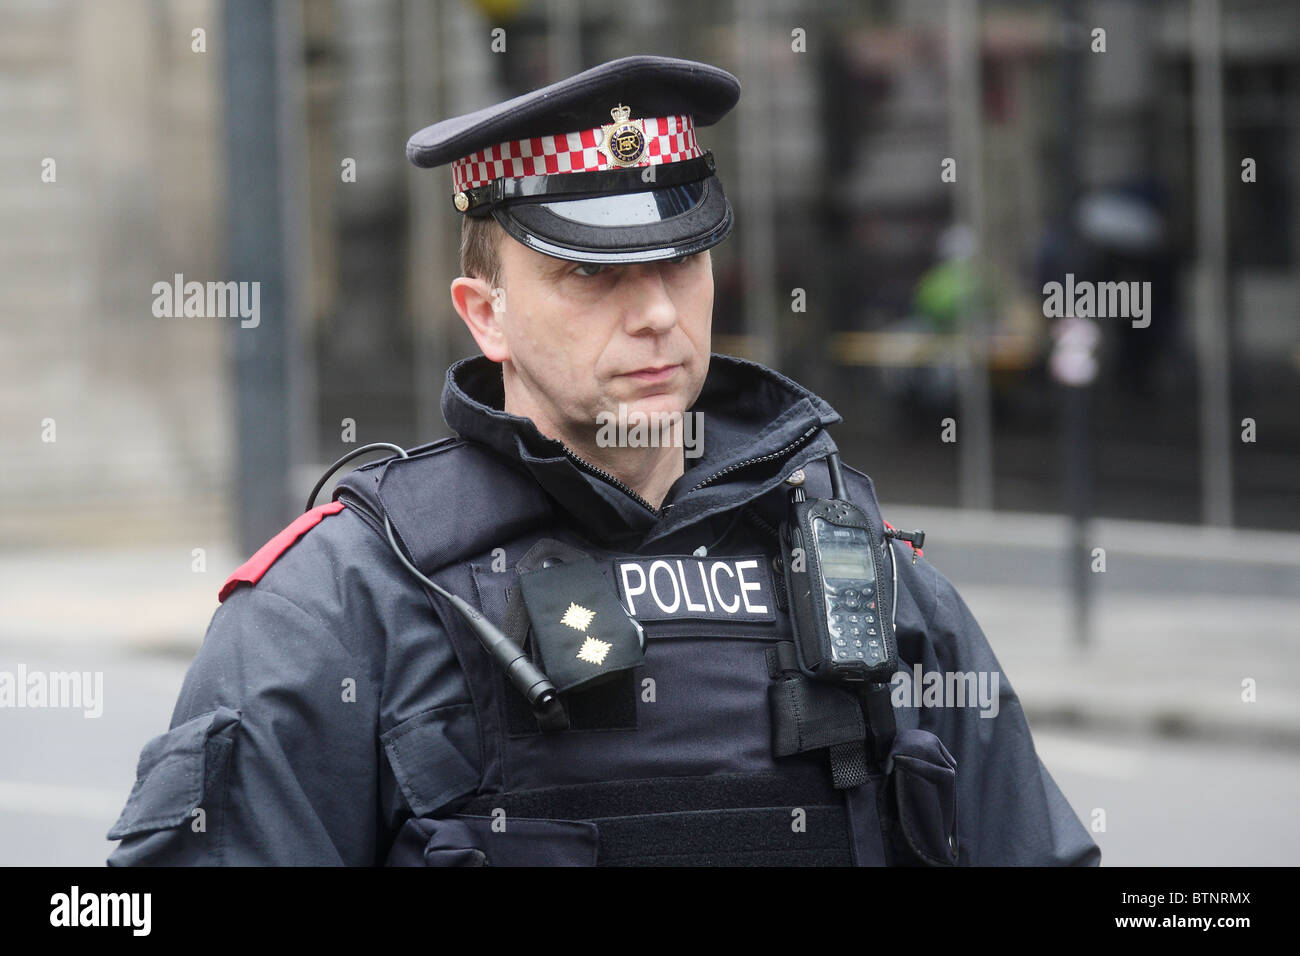 G20 Police Officer ordered press contingent to leave an area within the City of London or be arrested during G20 - Stock Image